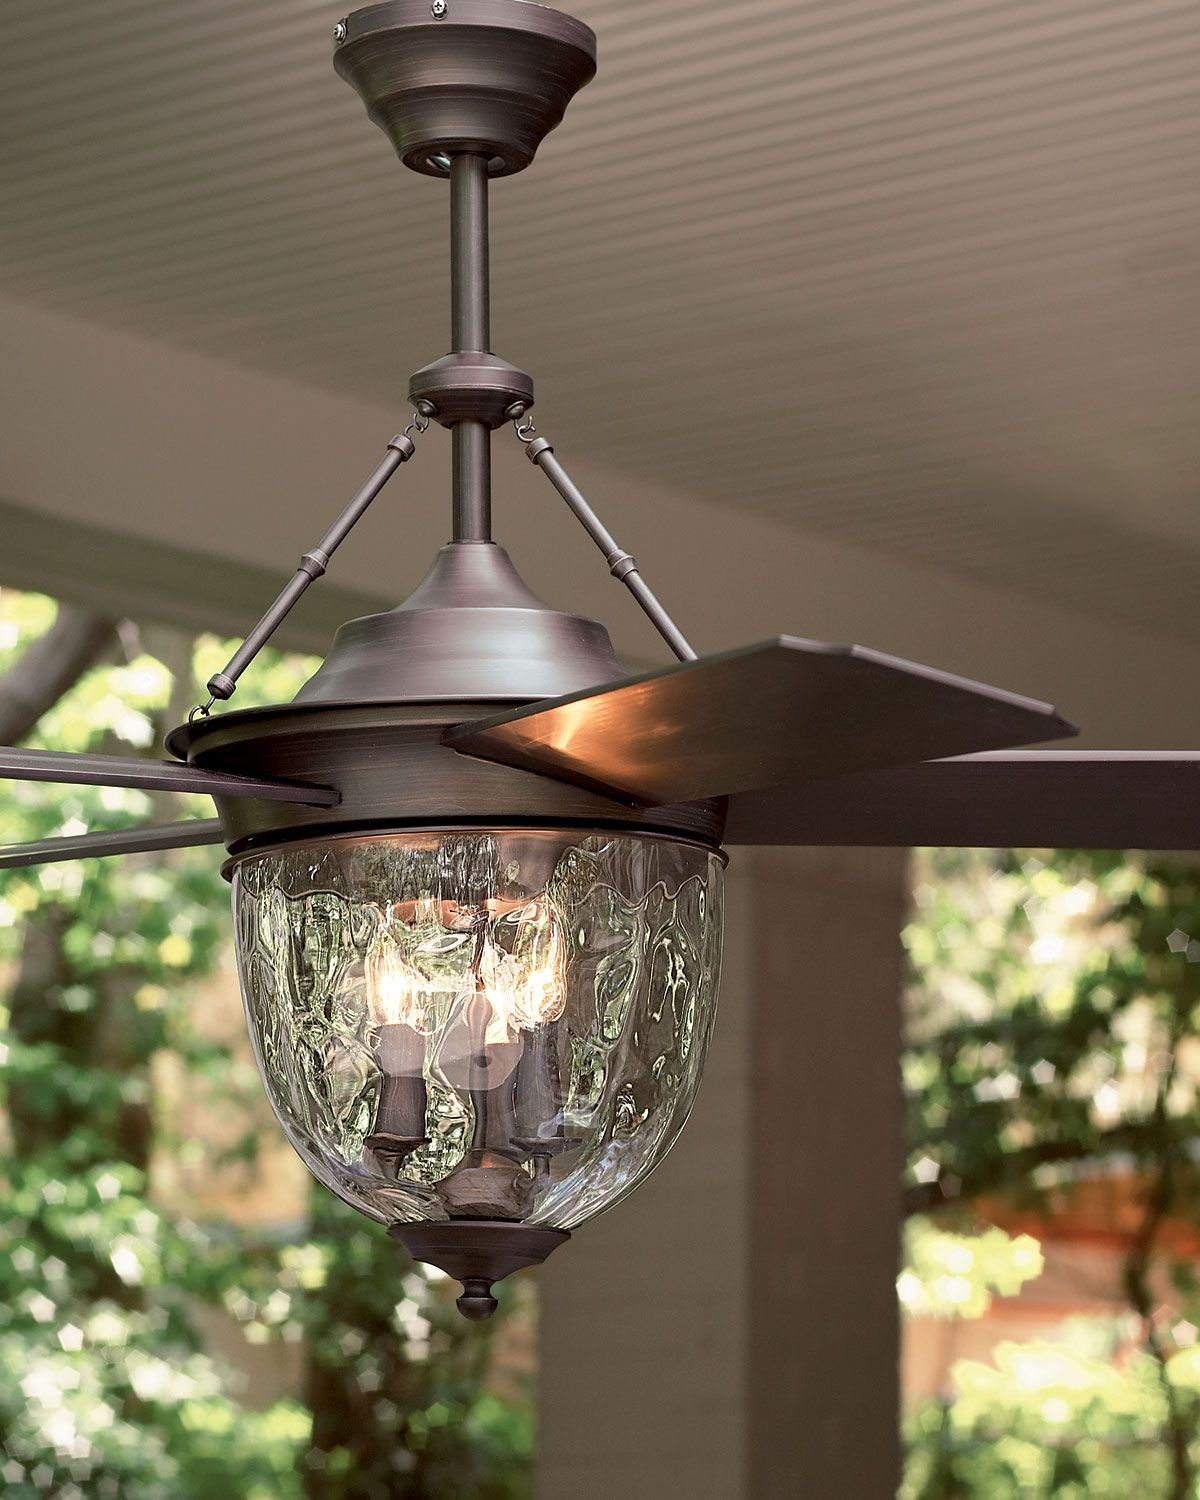 Dark Aged Bronze Outdoor Ceiling Fan with Lantern | Outdoor areas ... for Roof Lamp Design  585ifm